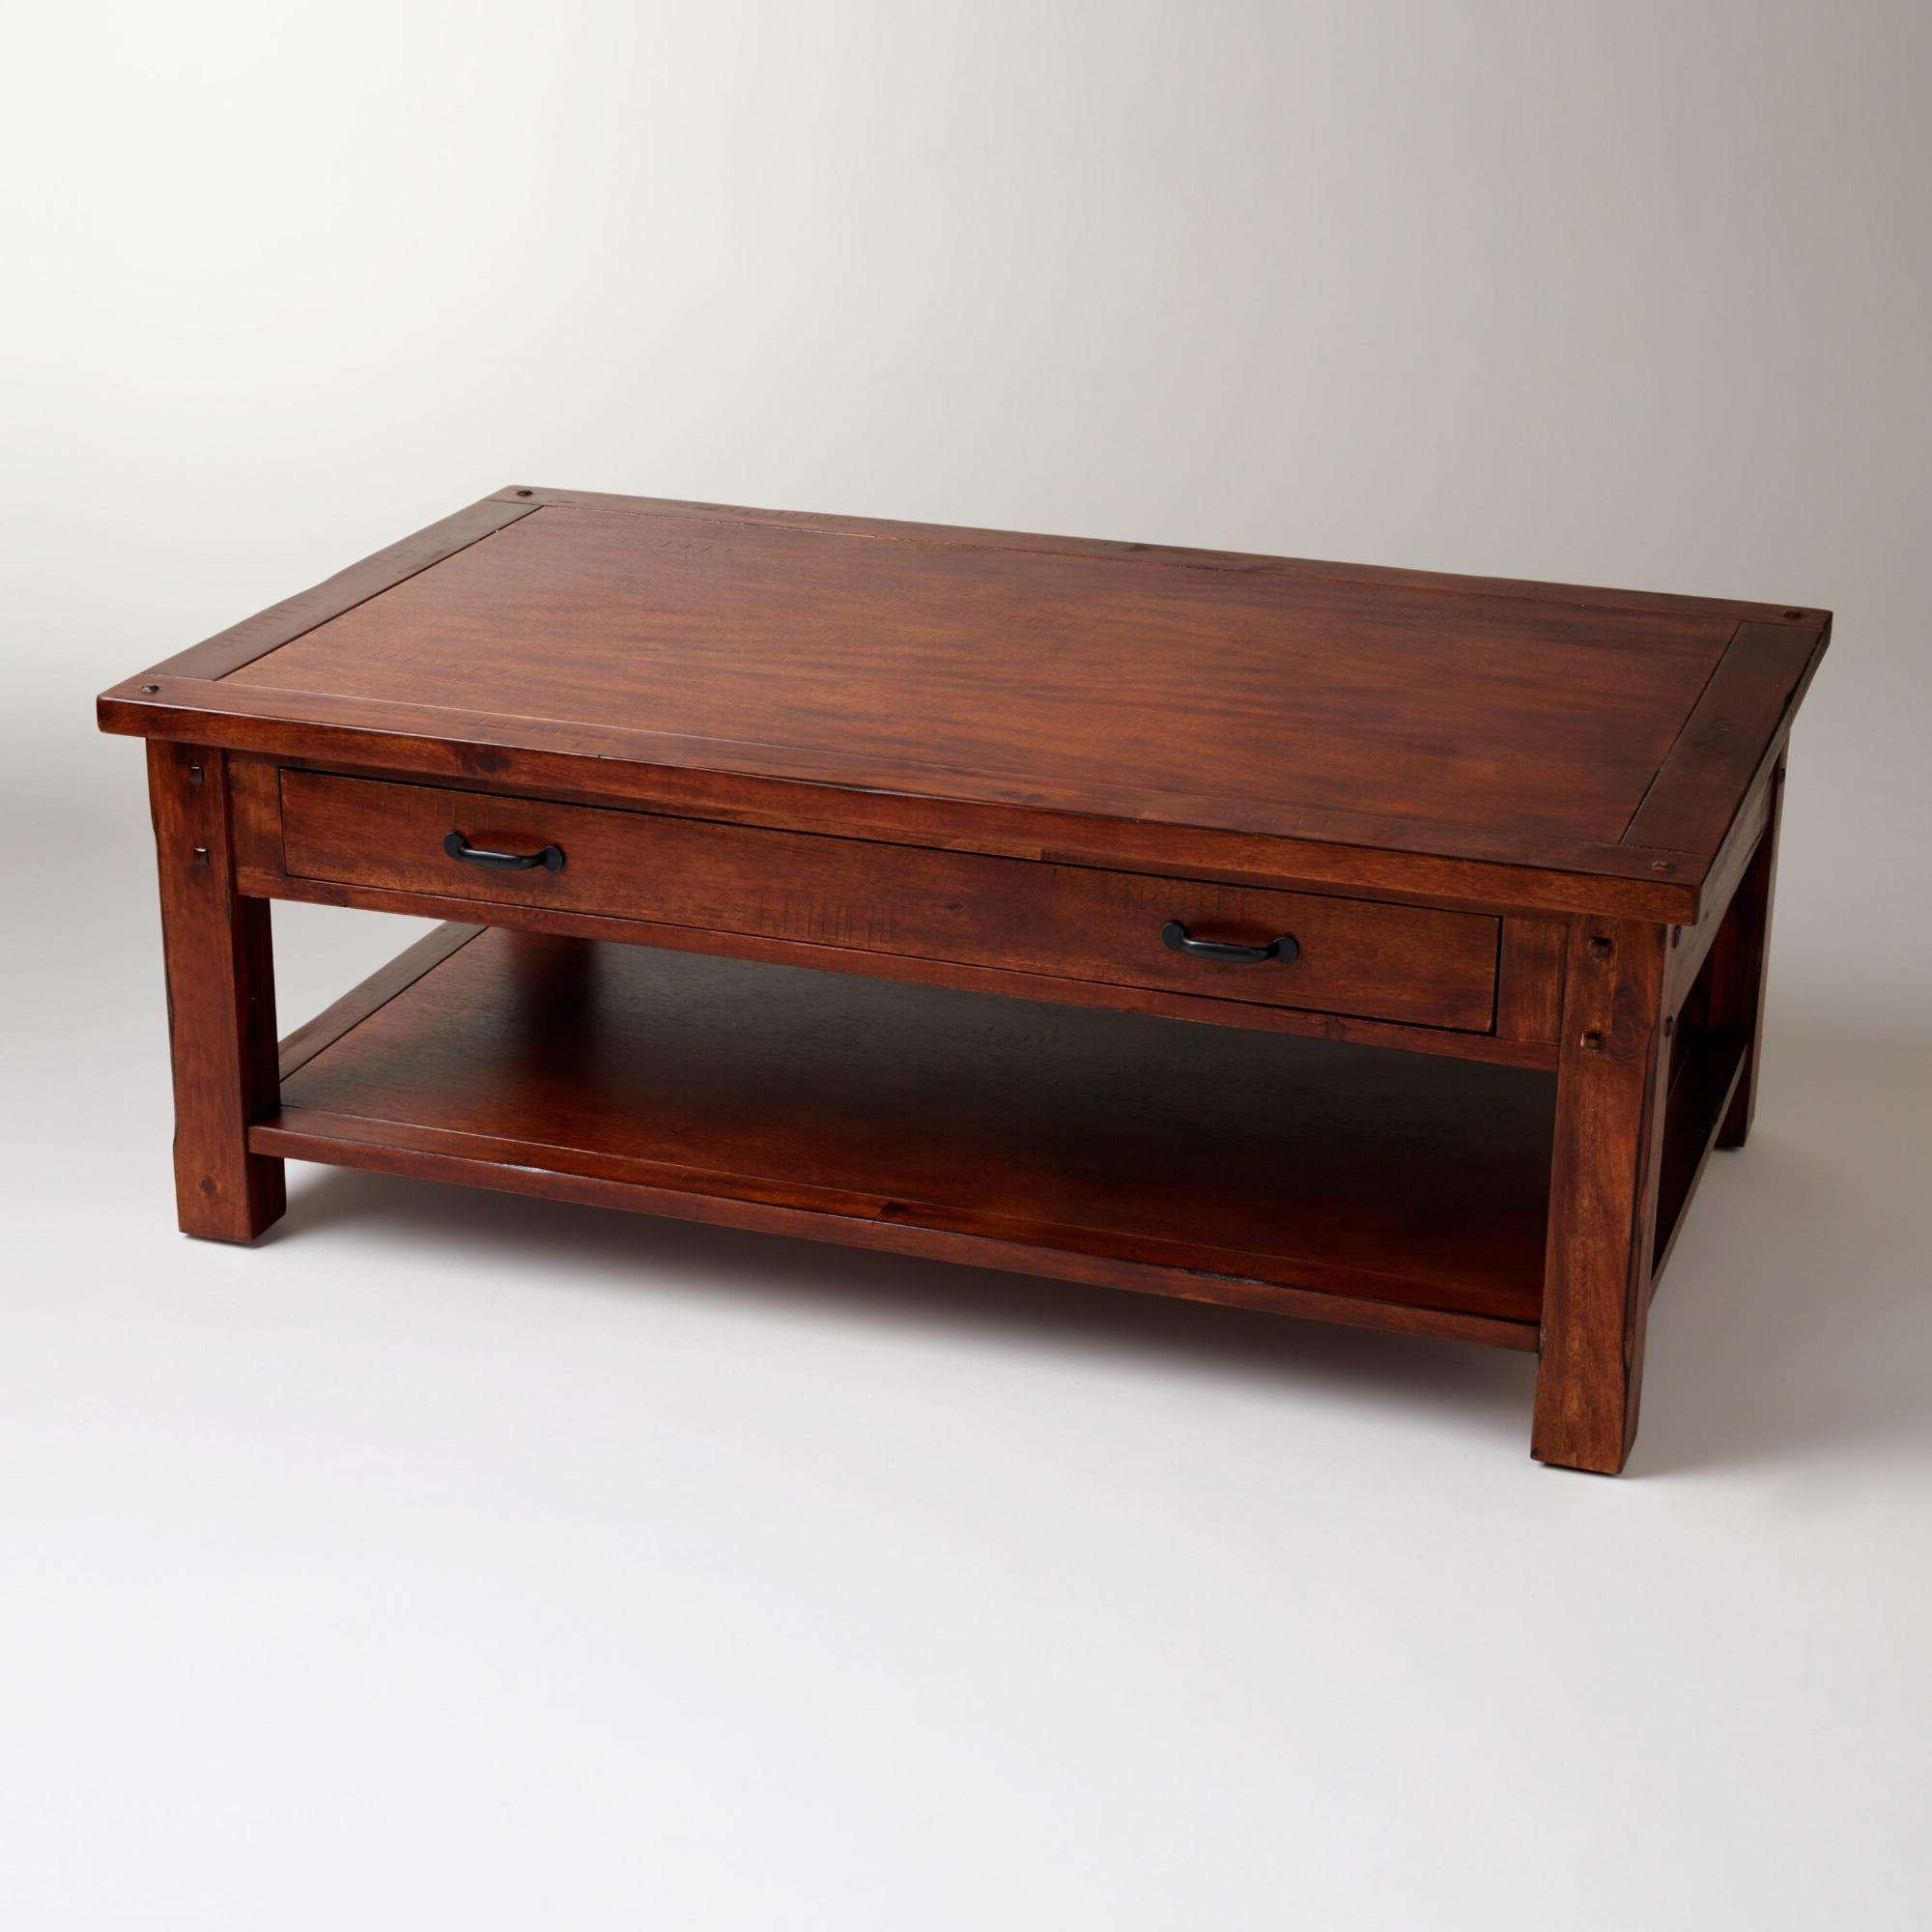 Coffee Table : Awesome Light Wood Coffee Table Rustic Wood Coffee Regarding Most Popular Dark Wooden Coffee Tables (View 10 of 20)